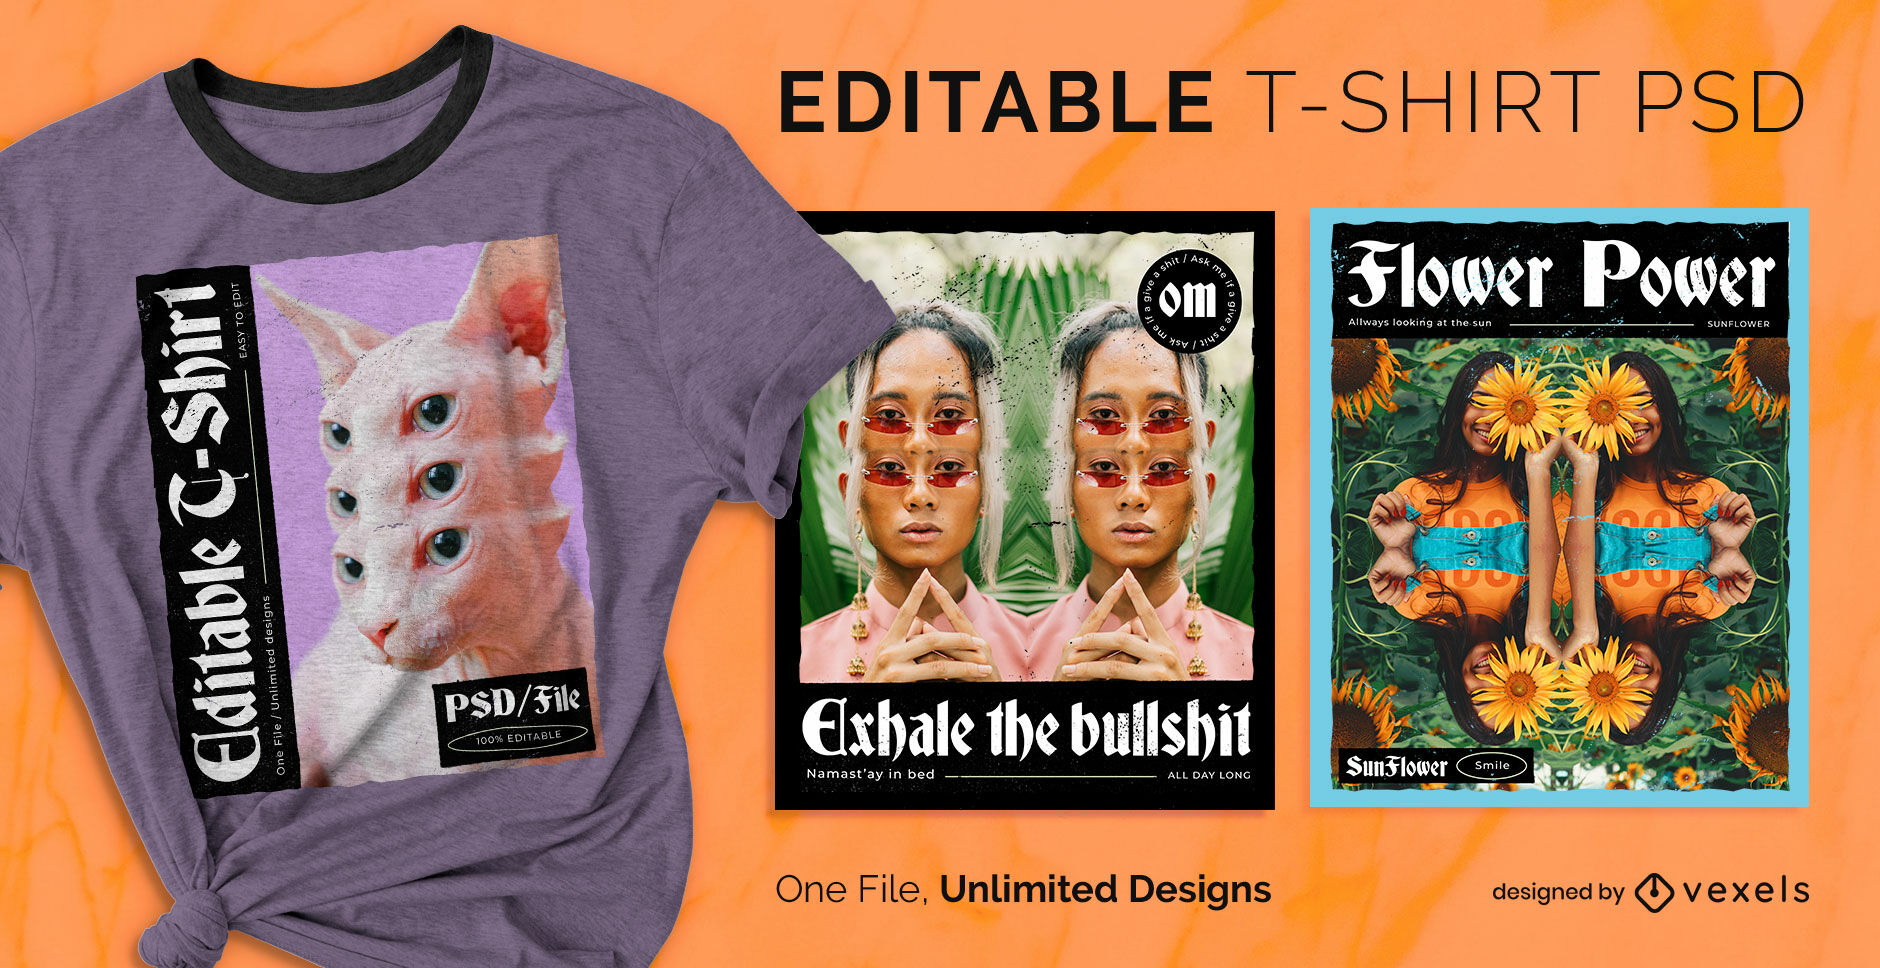 Mirrored images scalable t-shirt psd